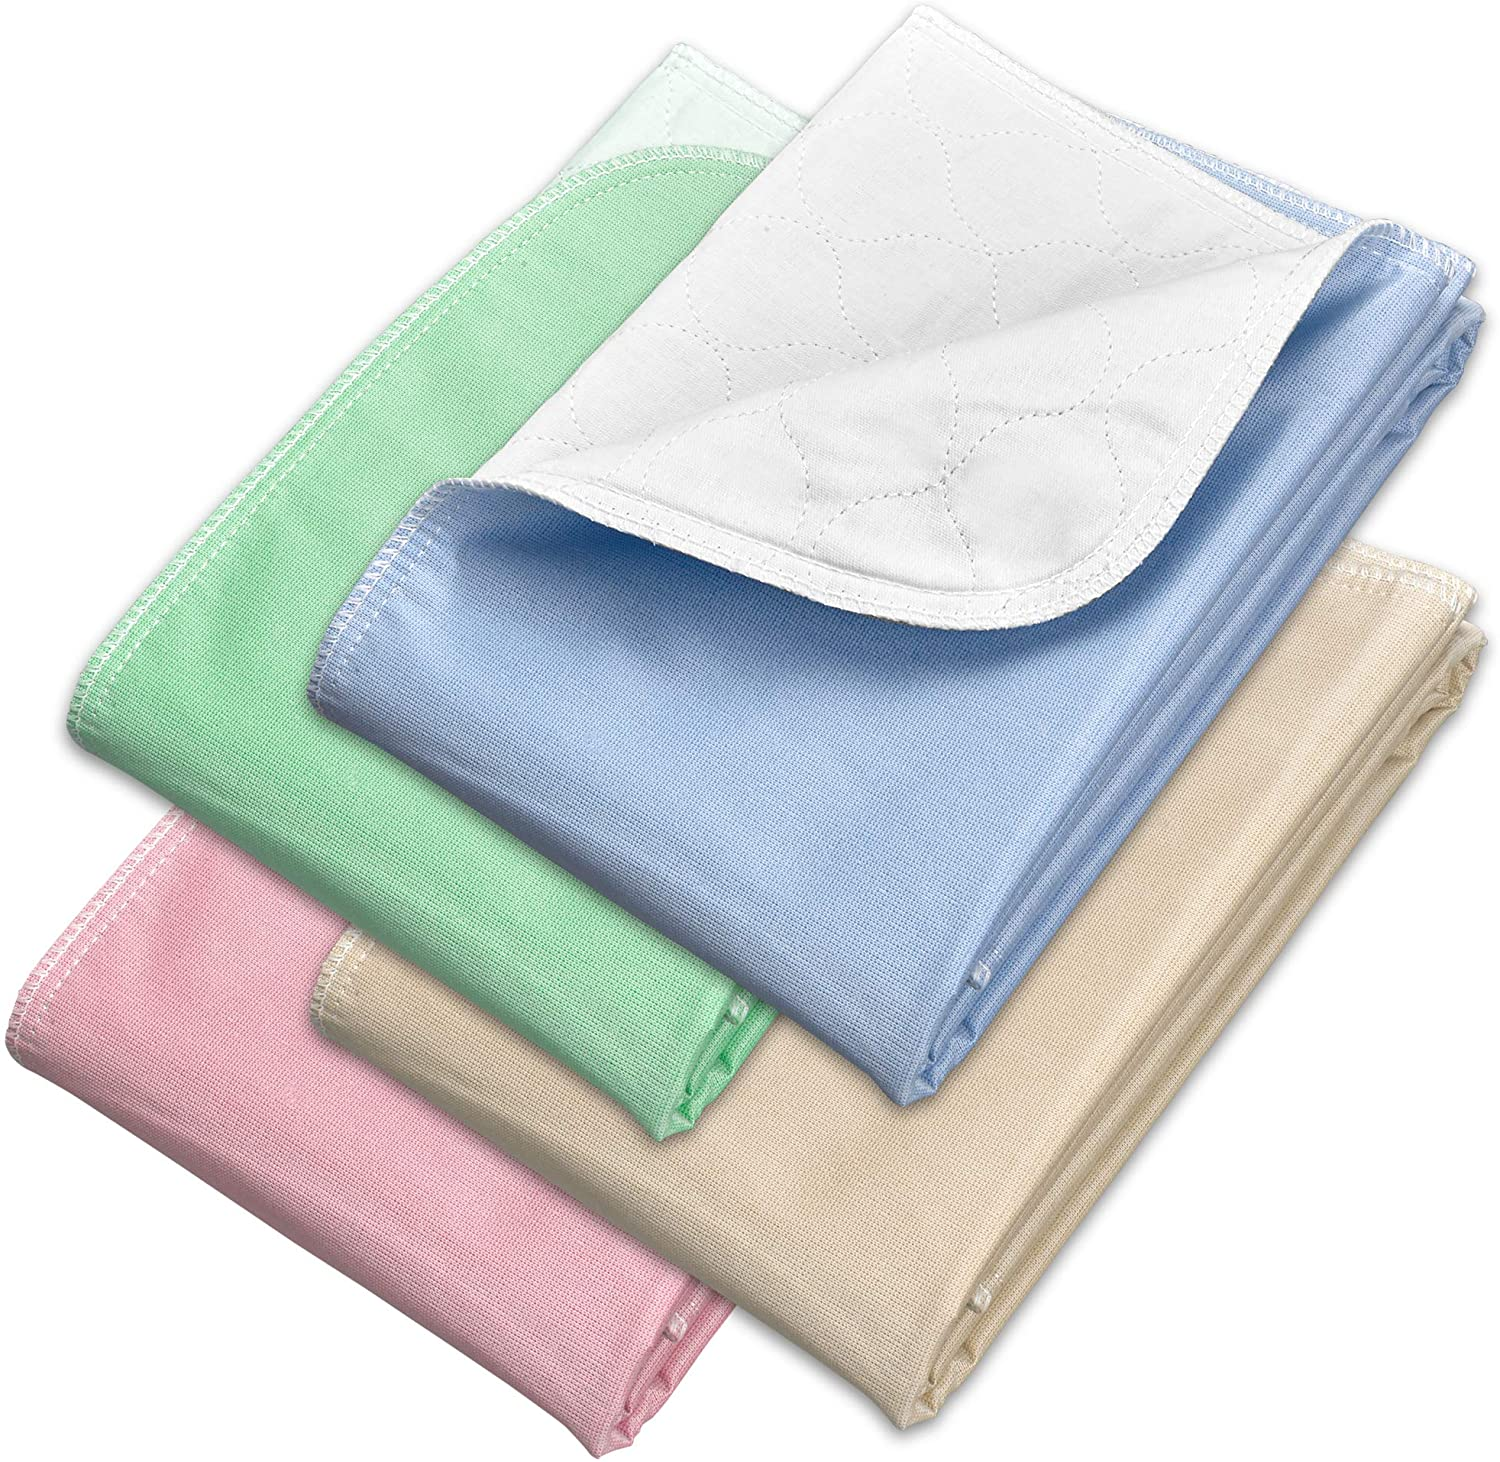 """Incontinence Bed Pads 4 Pack 34"""" x 36"""" - Reusable Waterproof Underpad Chair and Mattress Protectors - Highly Absorbent, Machine Washable - for Children, Pets and Seniors- Multicolor - Royal Care"""